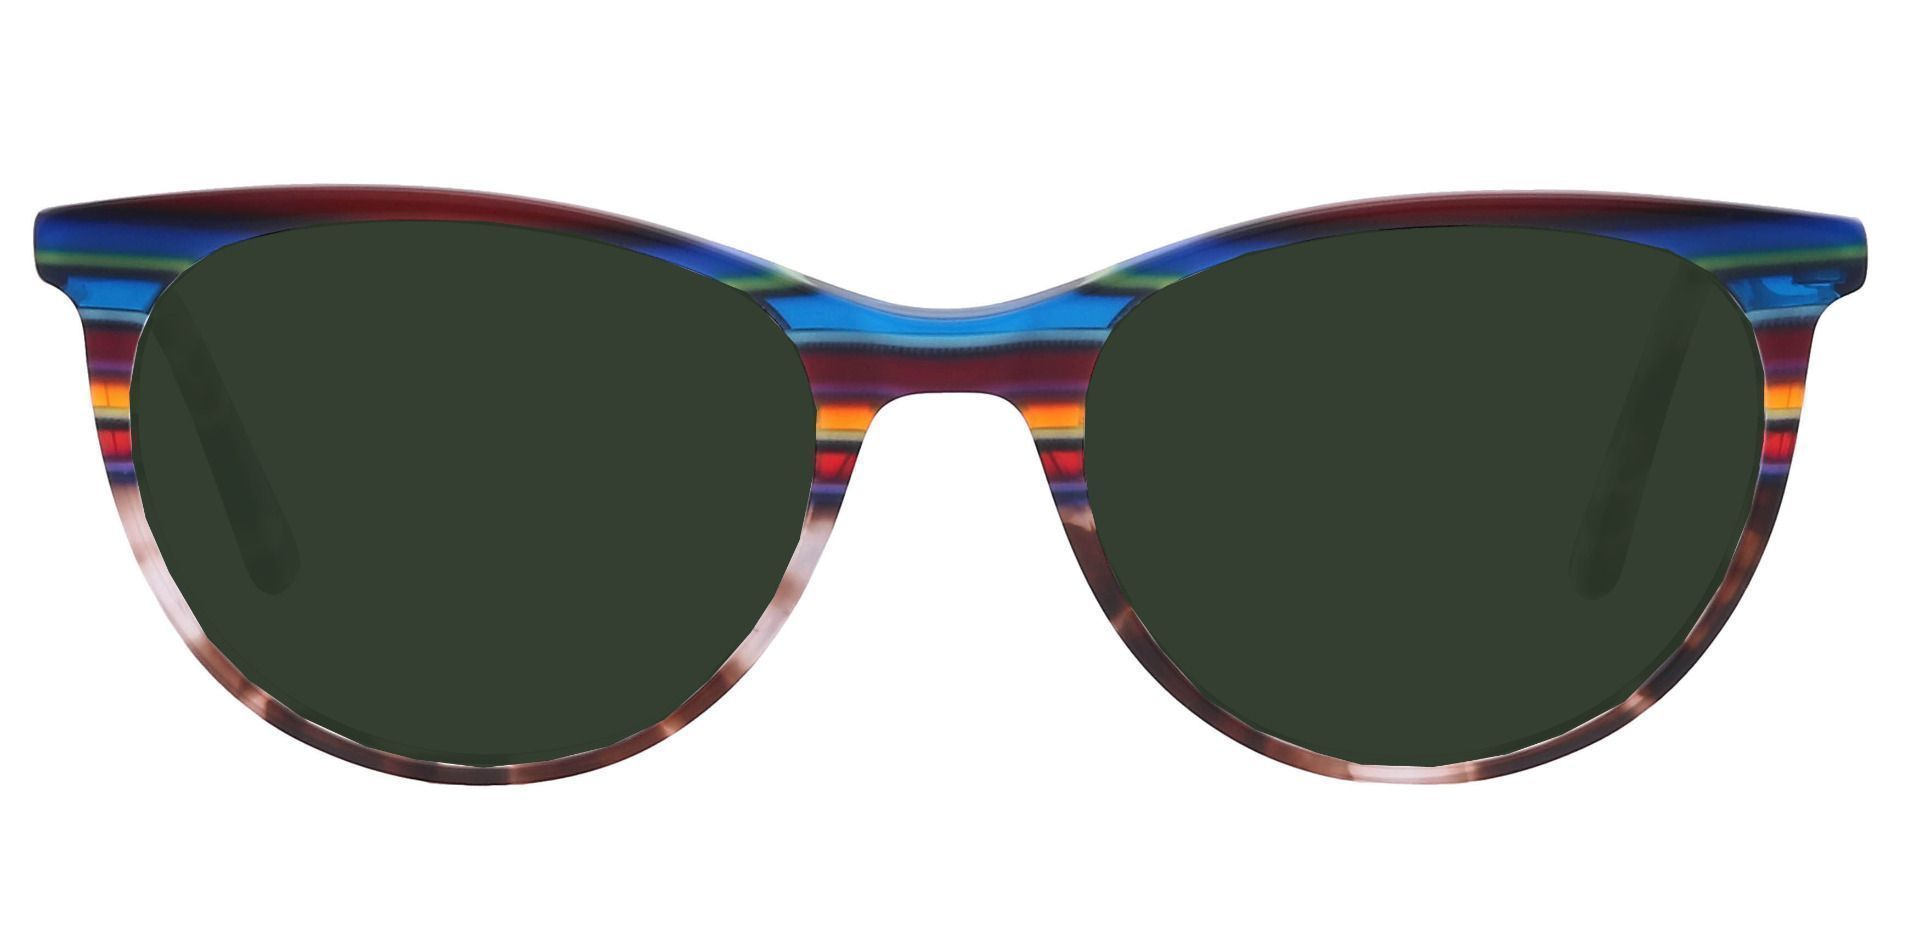 Patagonia Oval Prescription Sunglasses - Blue Frame With Green Lenses